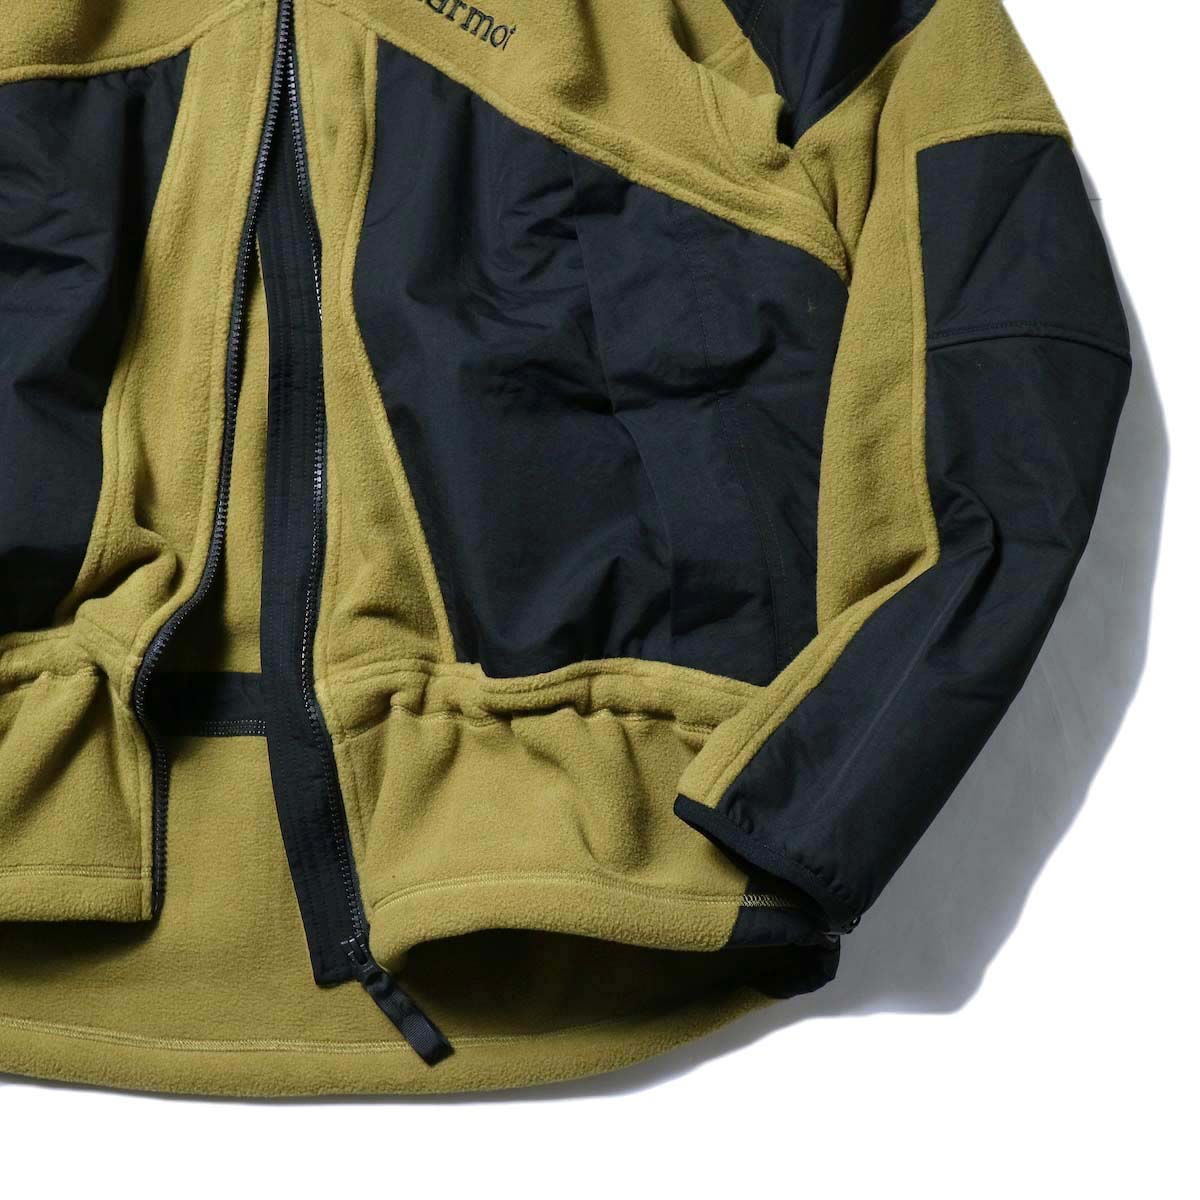 Marmot Histric Collection / Alpinist Tech Sweater (Coyote×Black)袖、裾